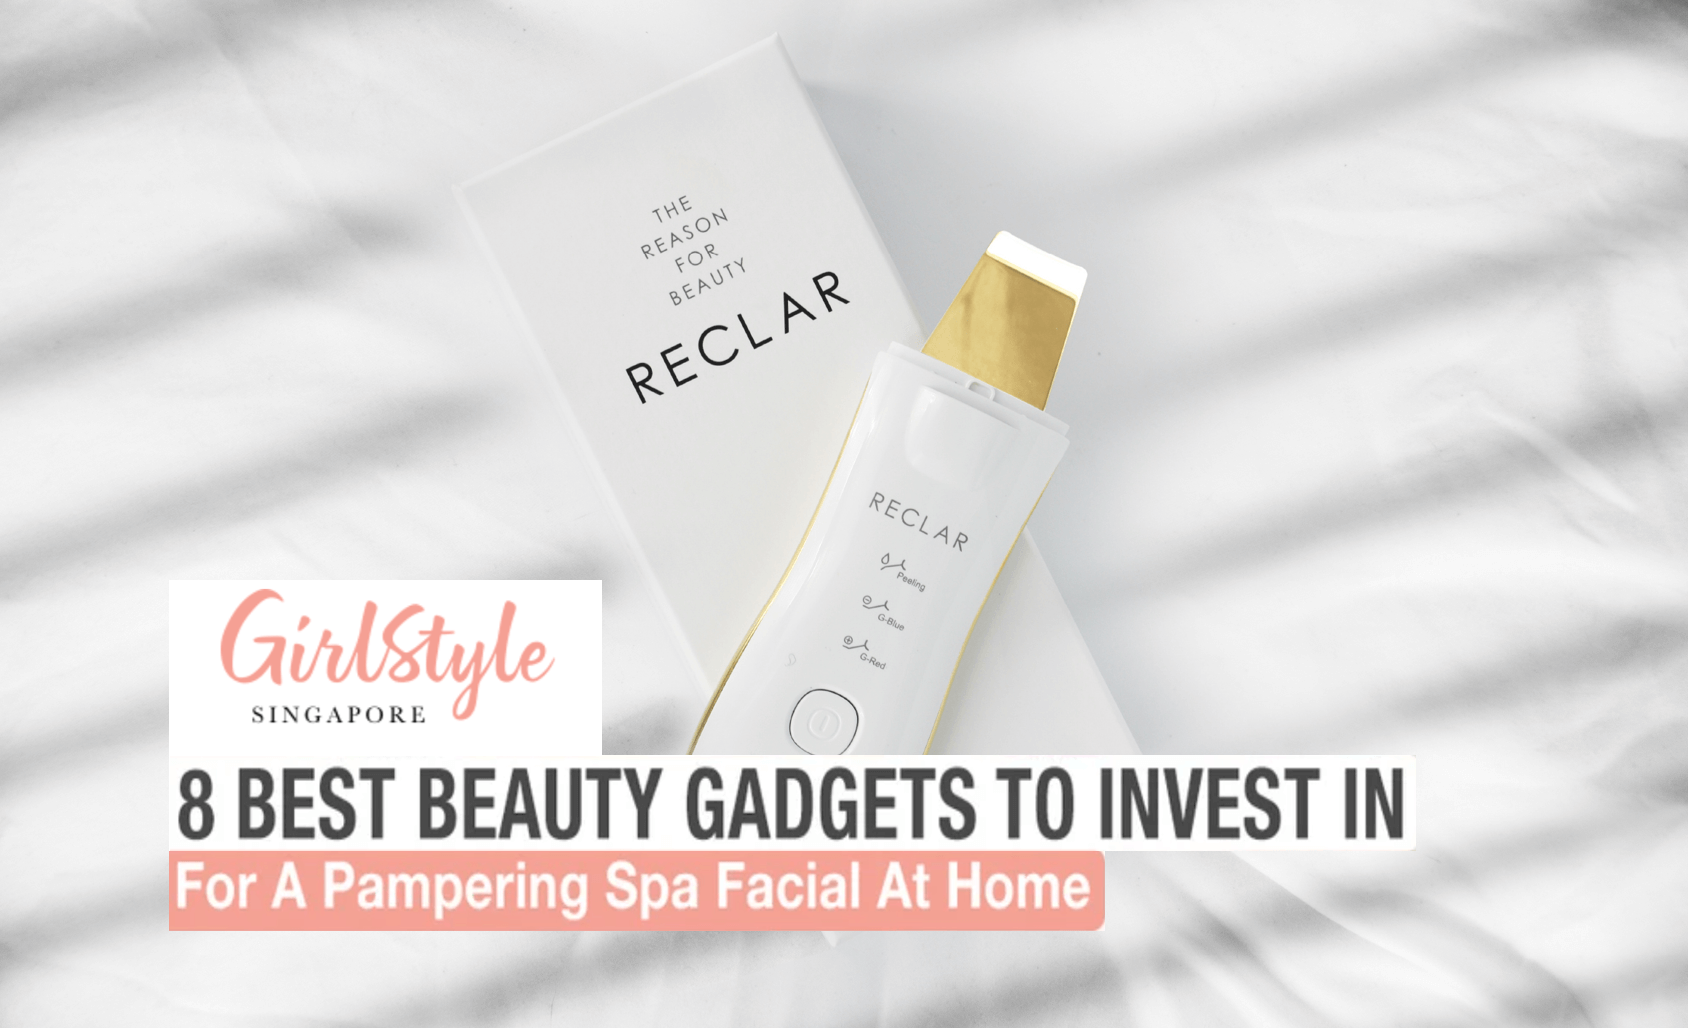 Girlstyle: 8 Best Beauty Gadgets to Invest In